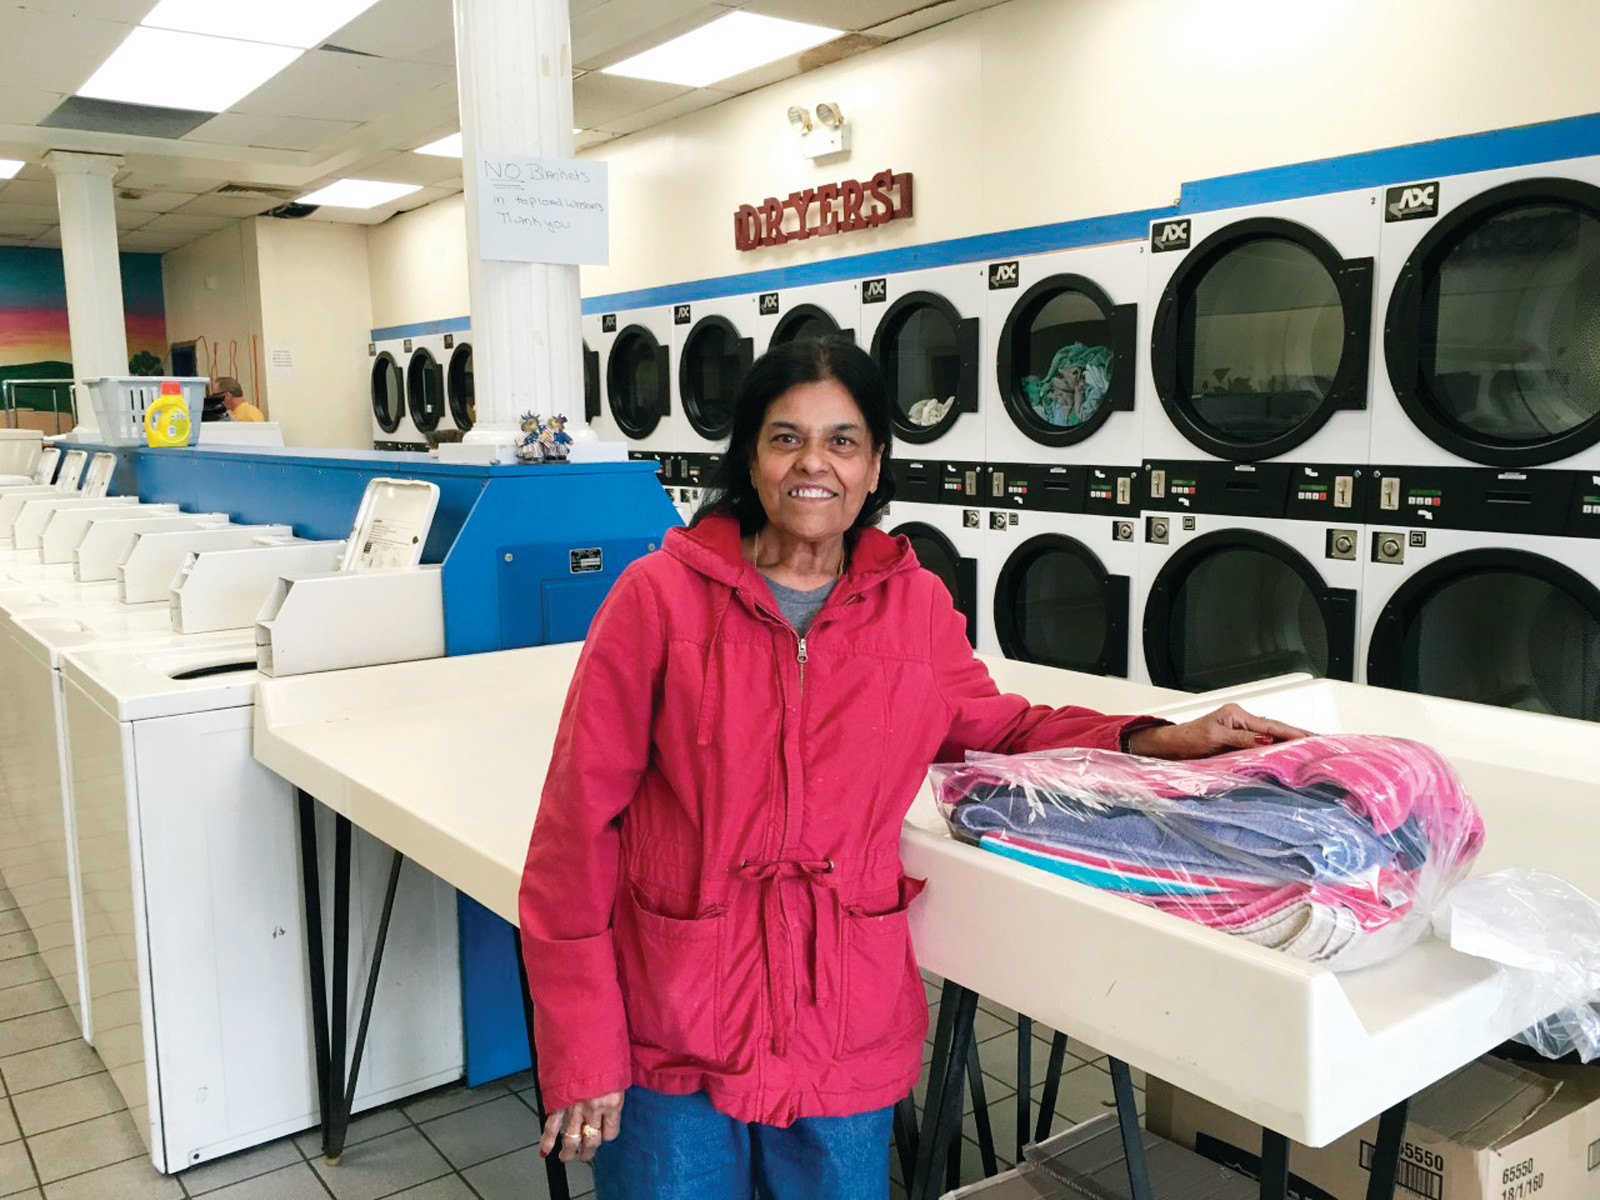 Kaushal Jain is a familiar face at the family-owned business that she and her husband have operated for over twenty-six years ~ here, she is ready to fold a load of clothes, straight from one of the laundromat's modern dryers.